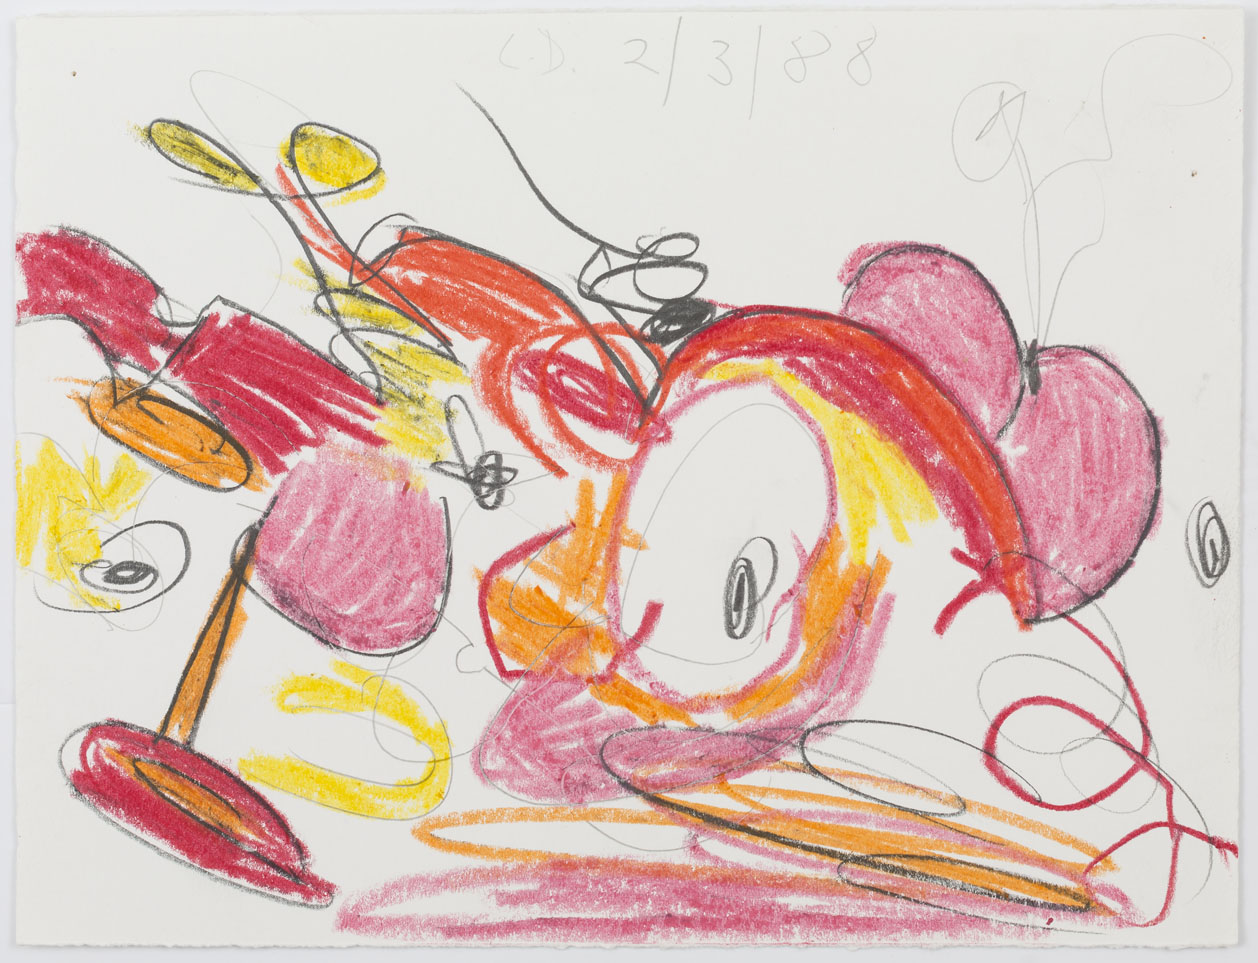 <i>Untitled (2/3/88)</i>, 1988, wax crayon and pencil on paper,7 5/8 x 10  inches (19.4 x 25.4 cm)